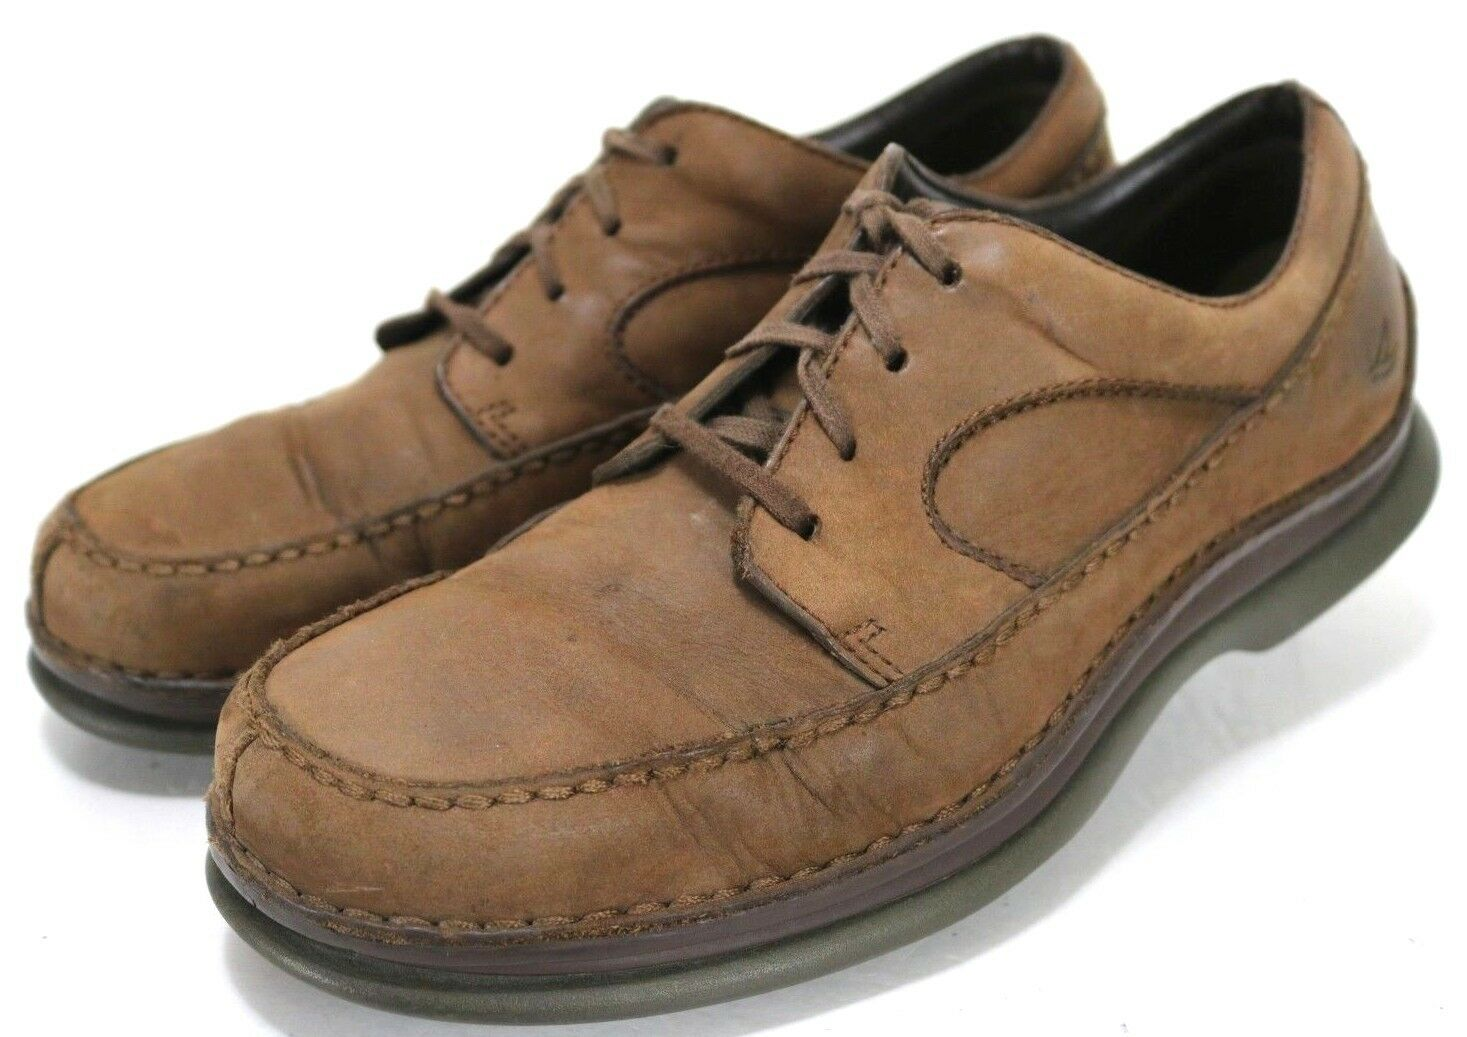 Sperry Men's  Lace Up Leather shoes Size 11 Brown